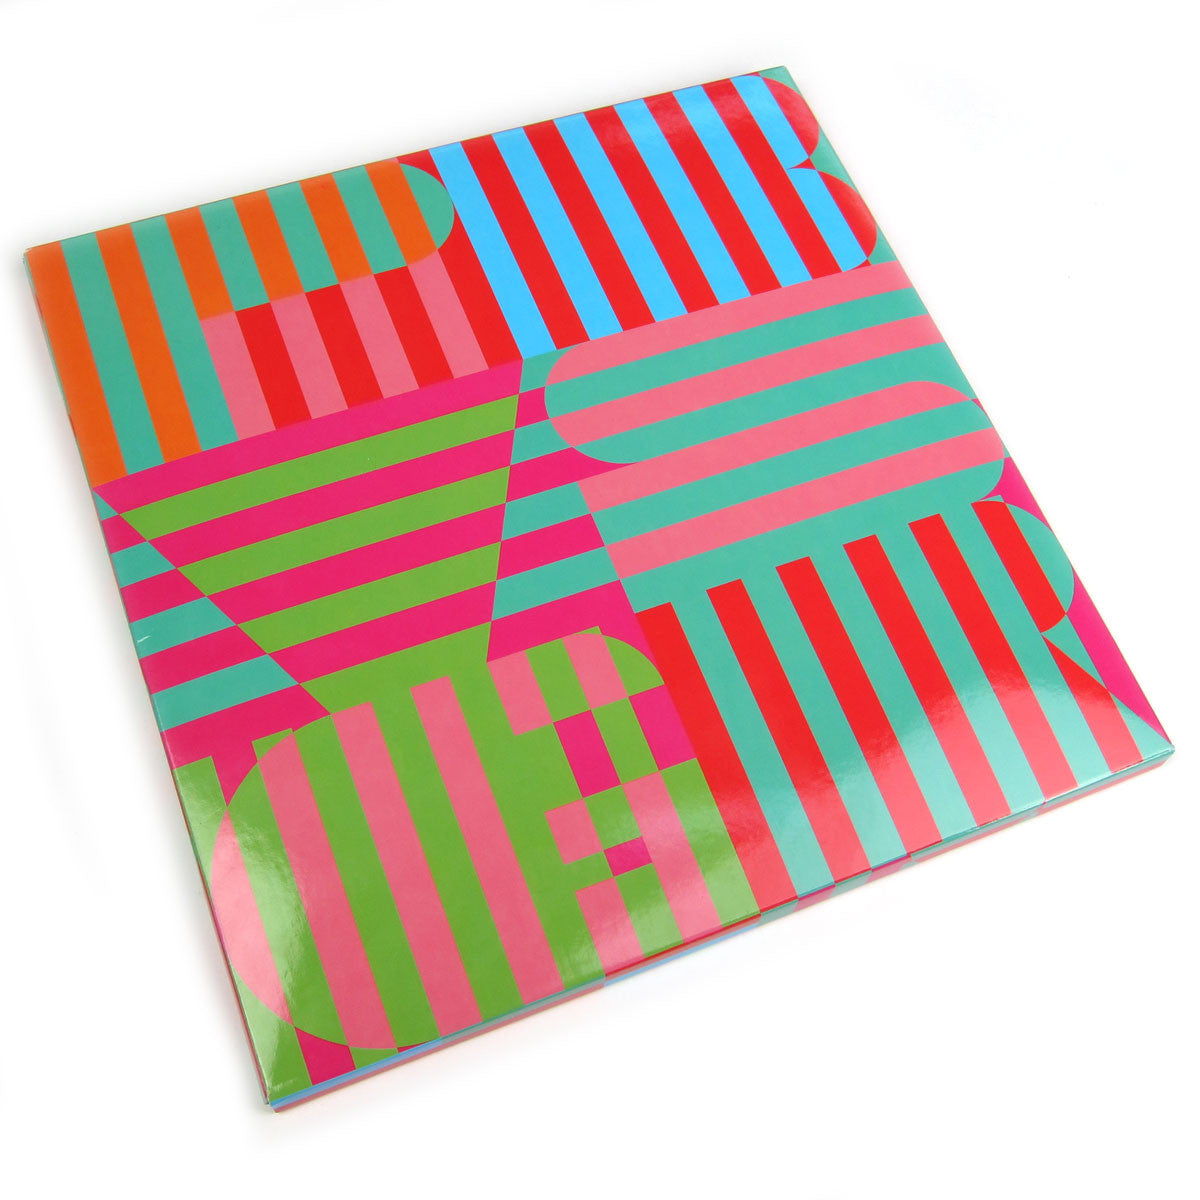 Panda Bear: Panda Bear Meets The Grim Reaper (180g, Free MP3) Vinyl LP Boxset